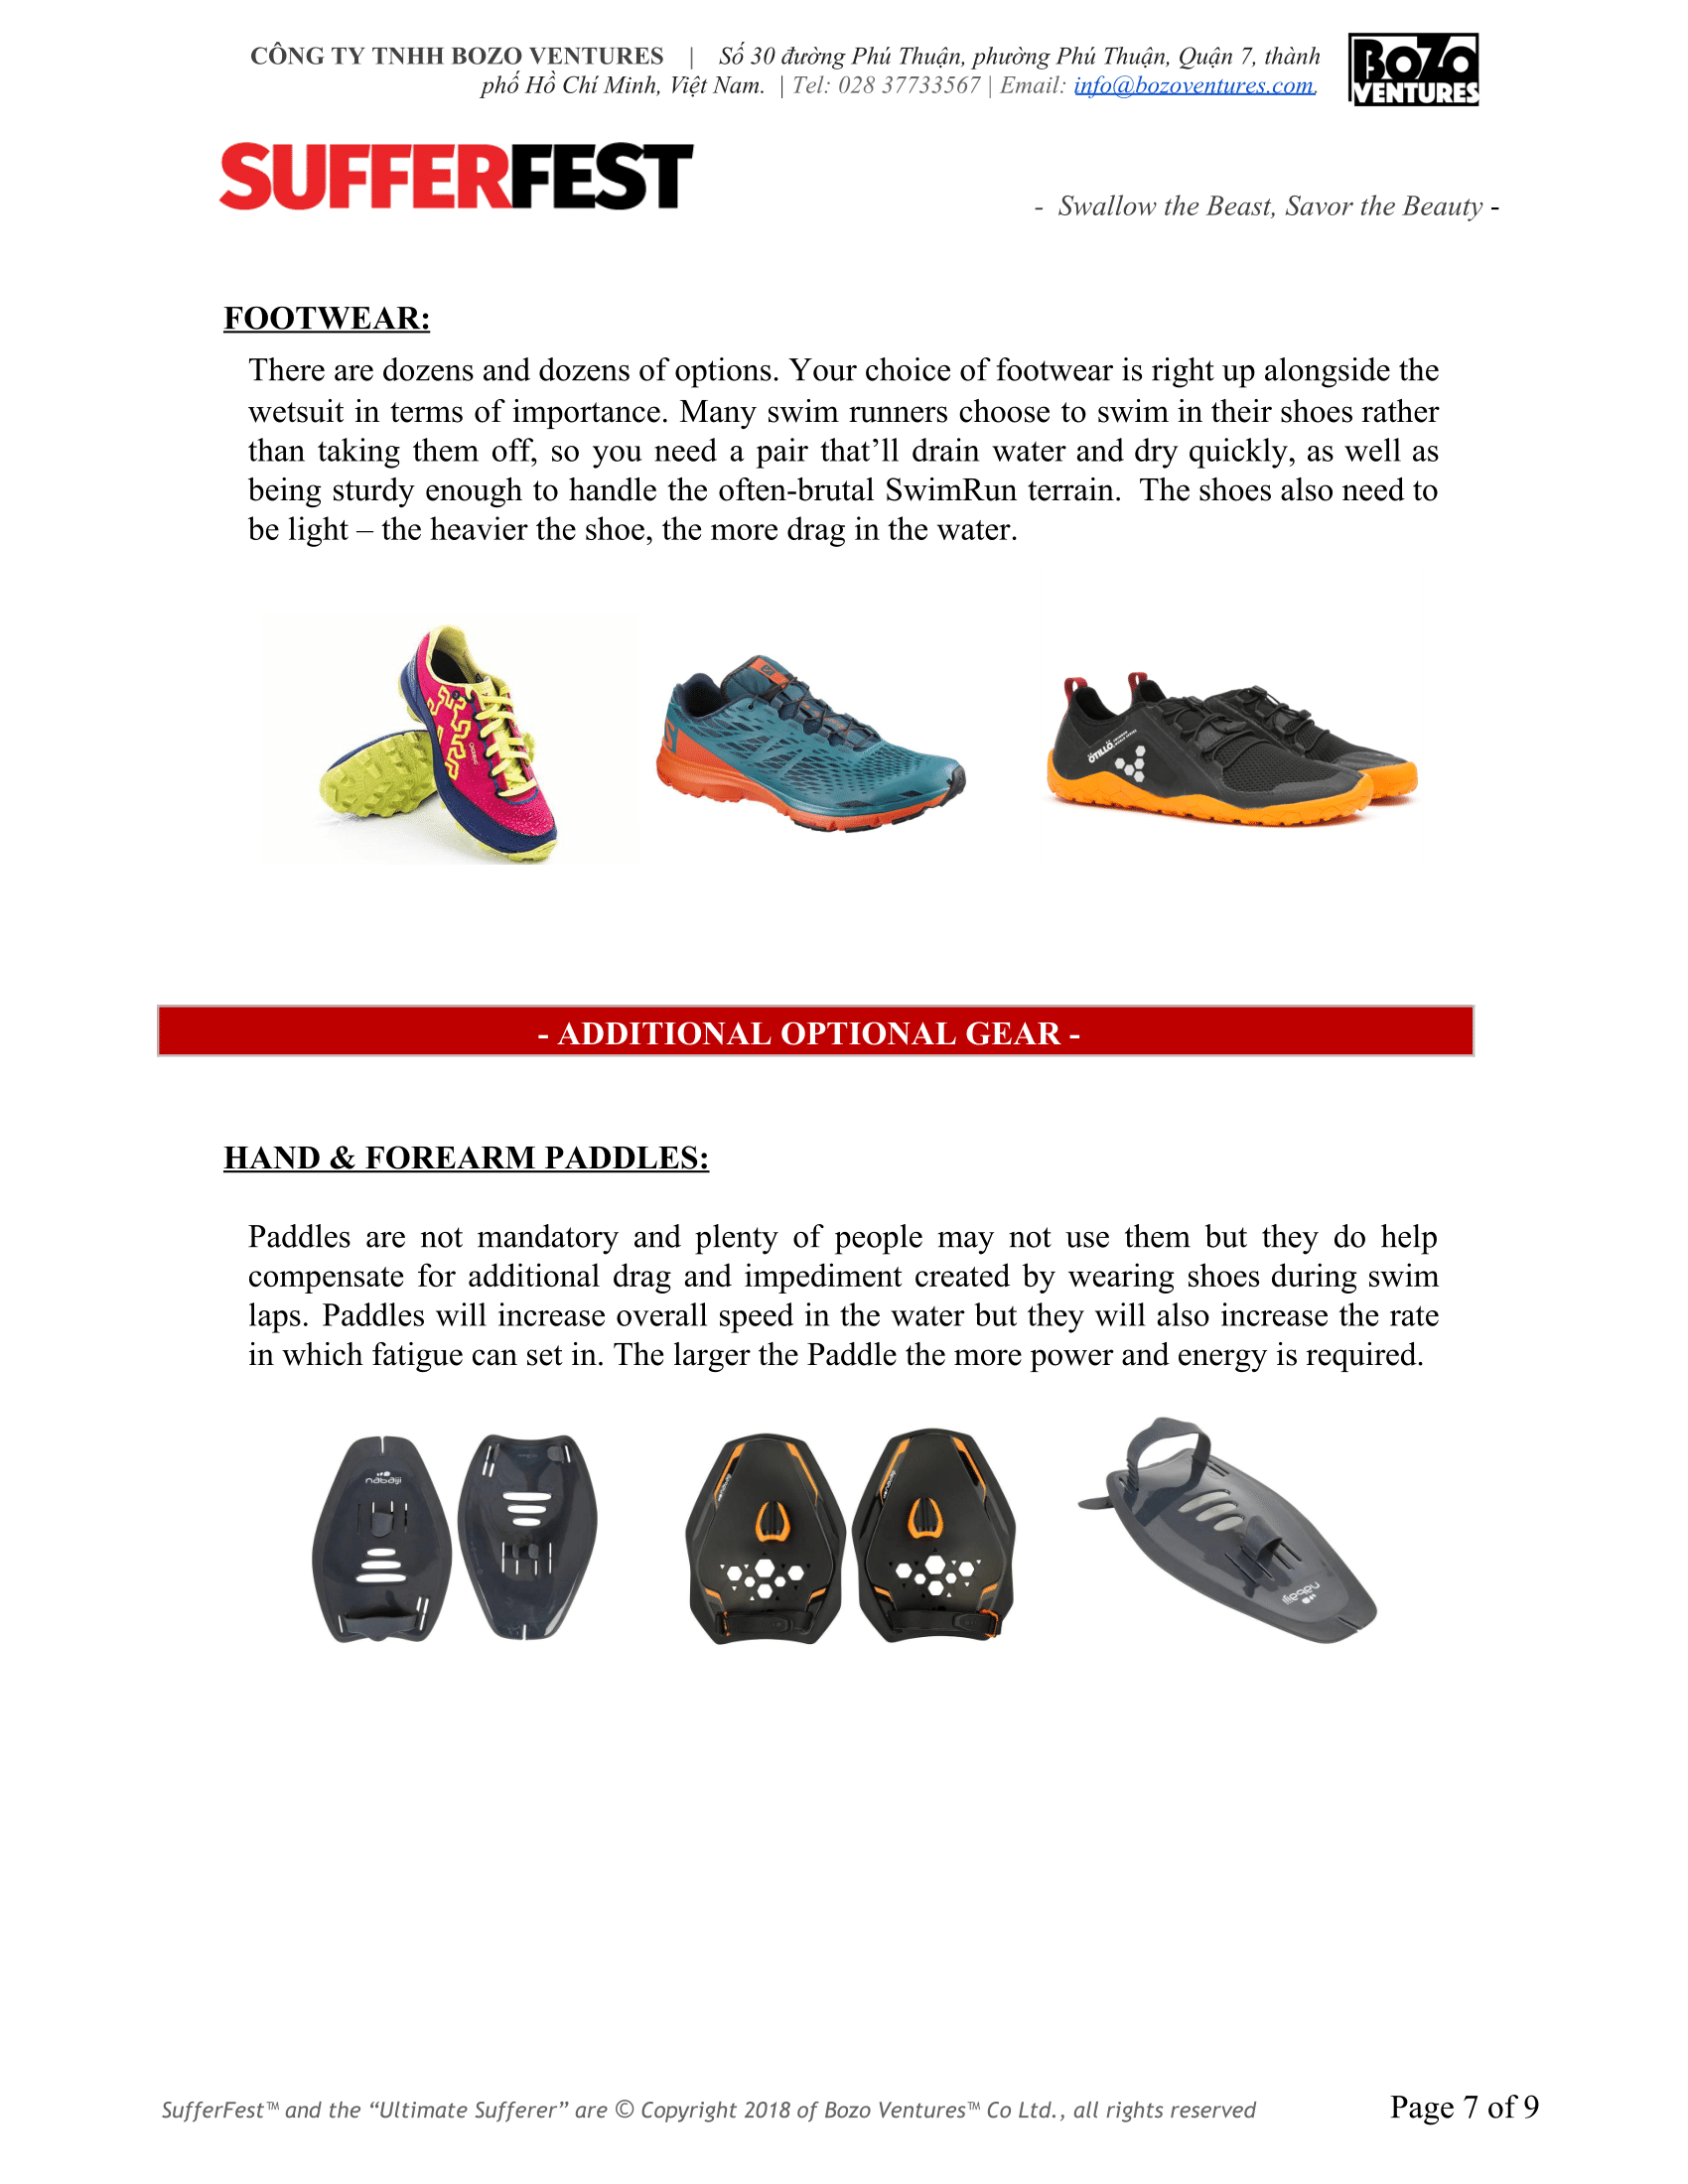 [ENG] SufferFest™ - SwimRun Gear Guide -7.png